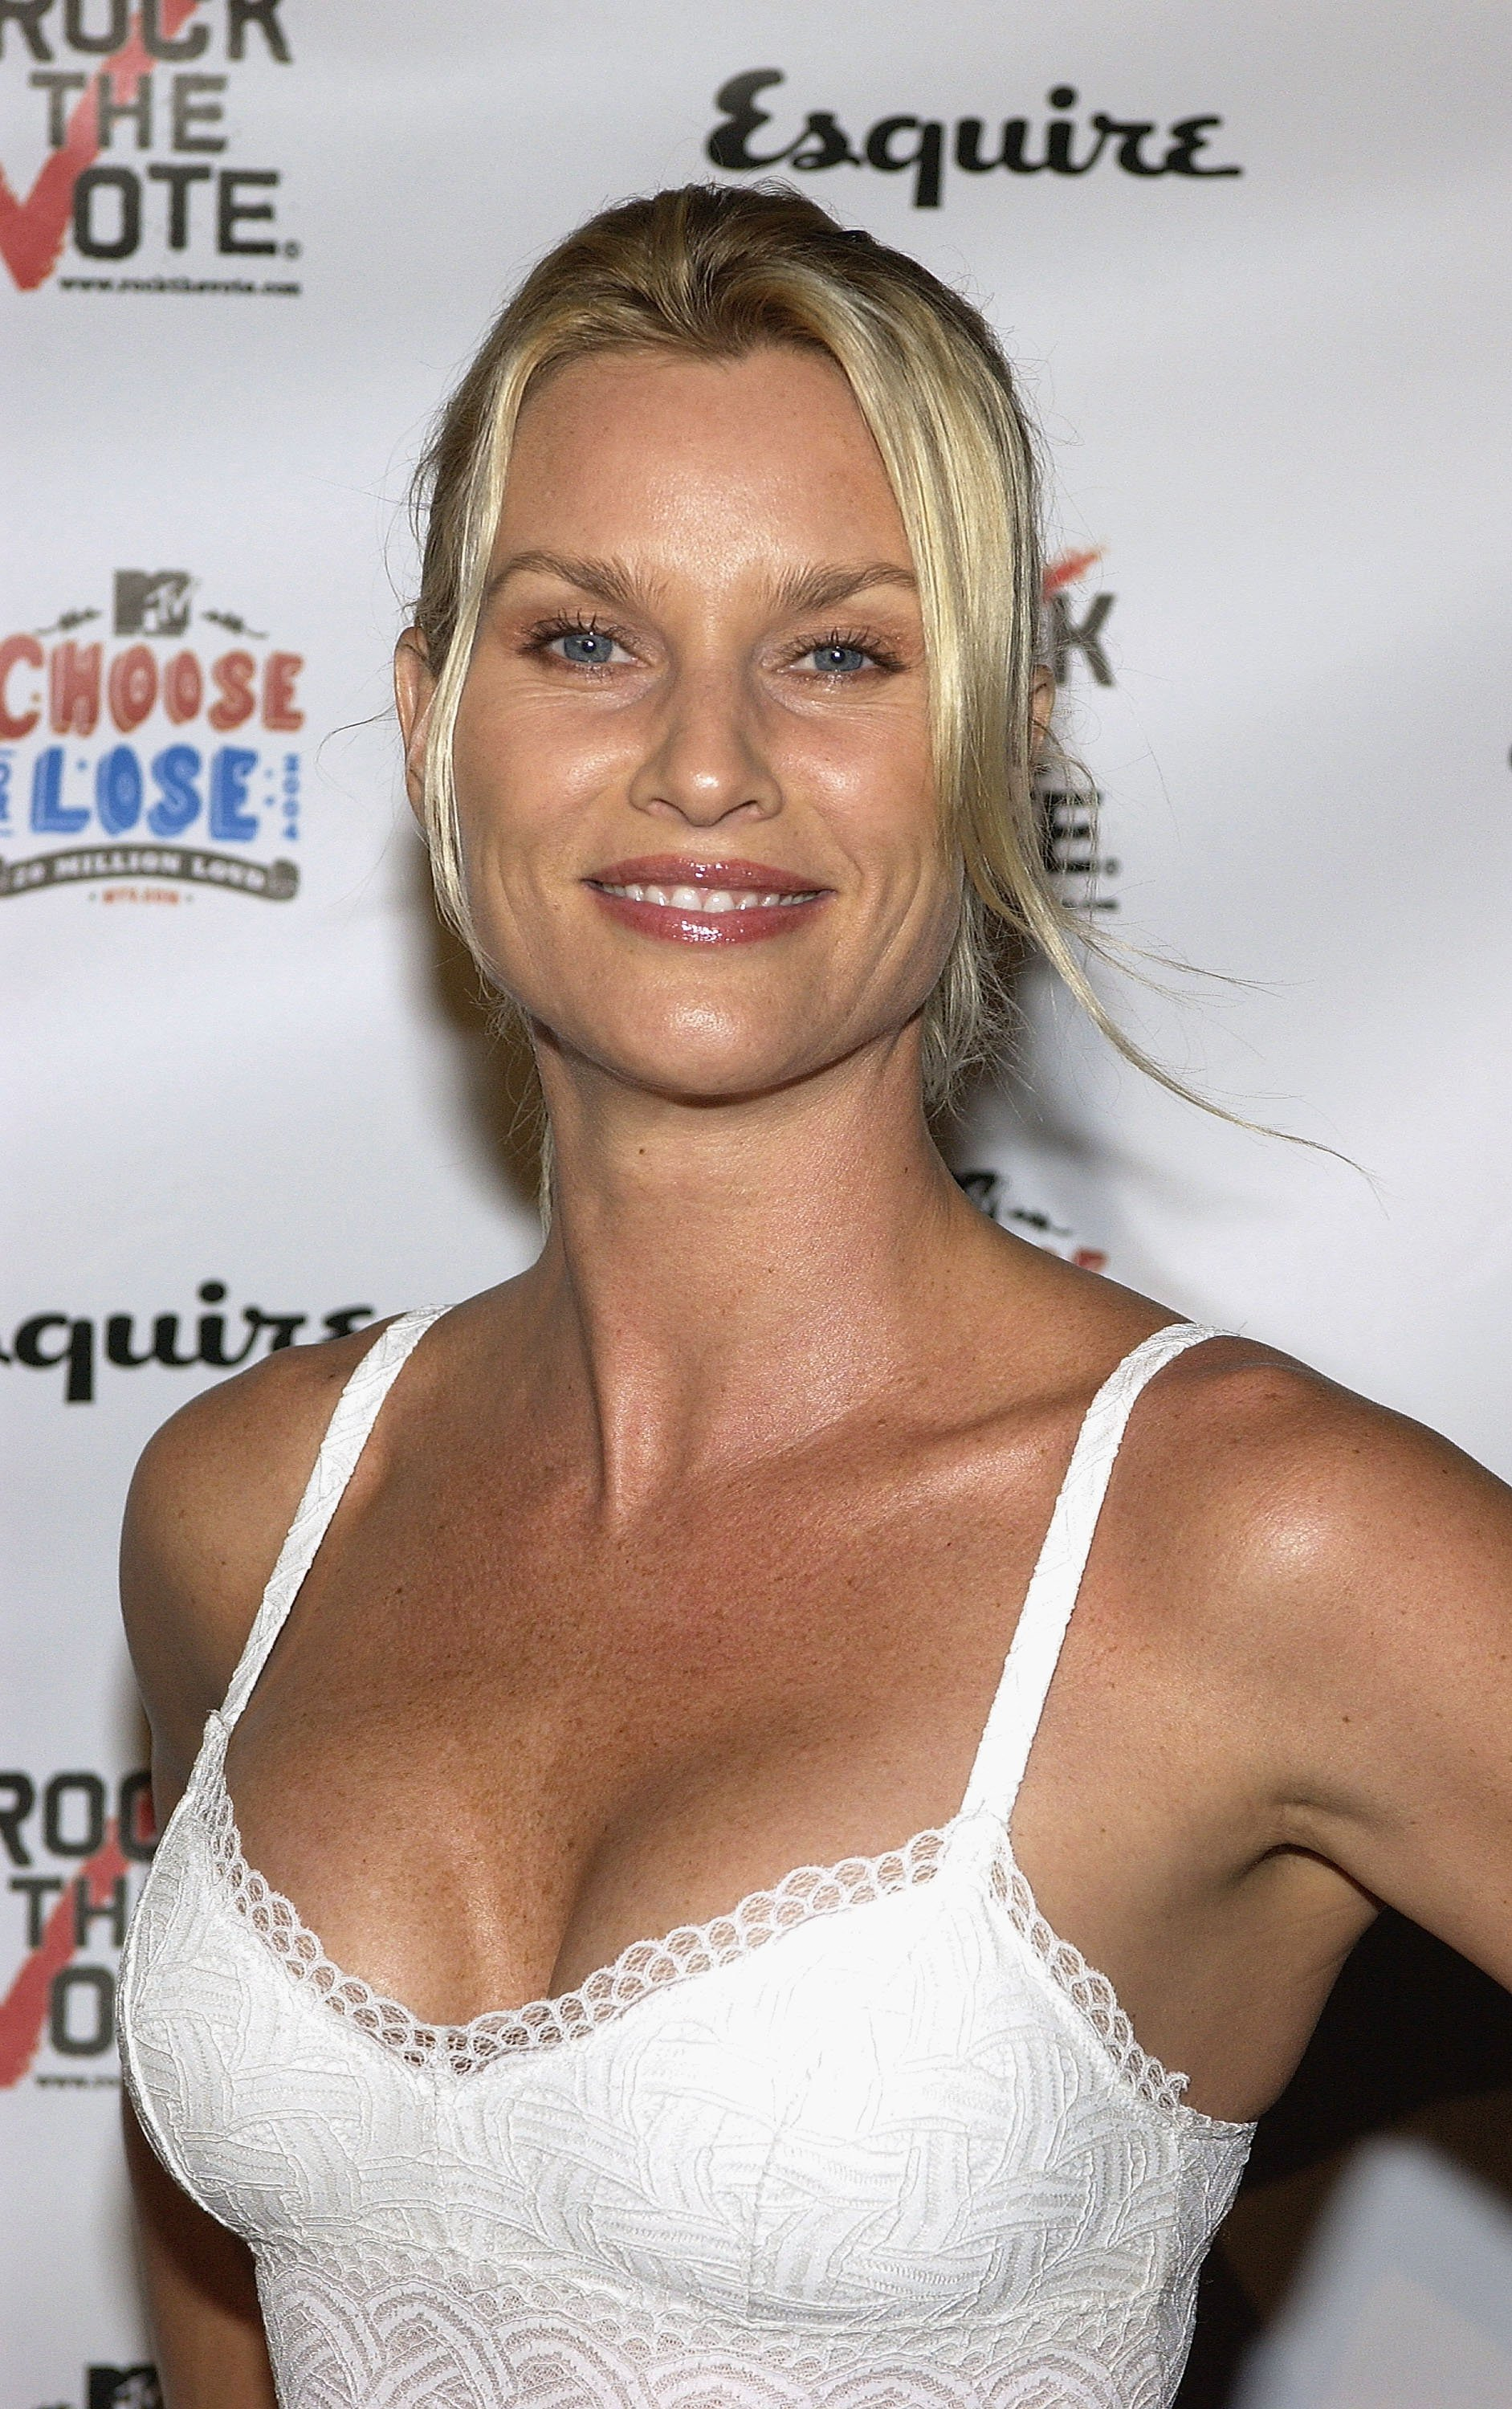 """Nicolette Sheridan at """"Young Hollywood Votes"""" at the Esquire House Los Angeles on October 13, 2004 in Beverly Hills, California.  Source: Getty Images"""